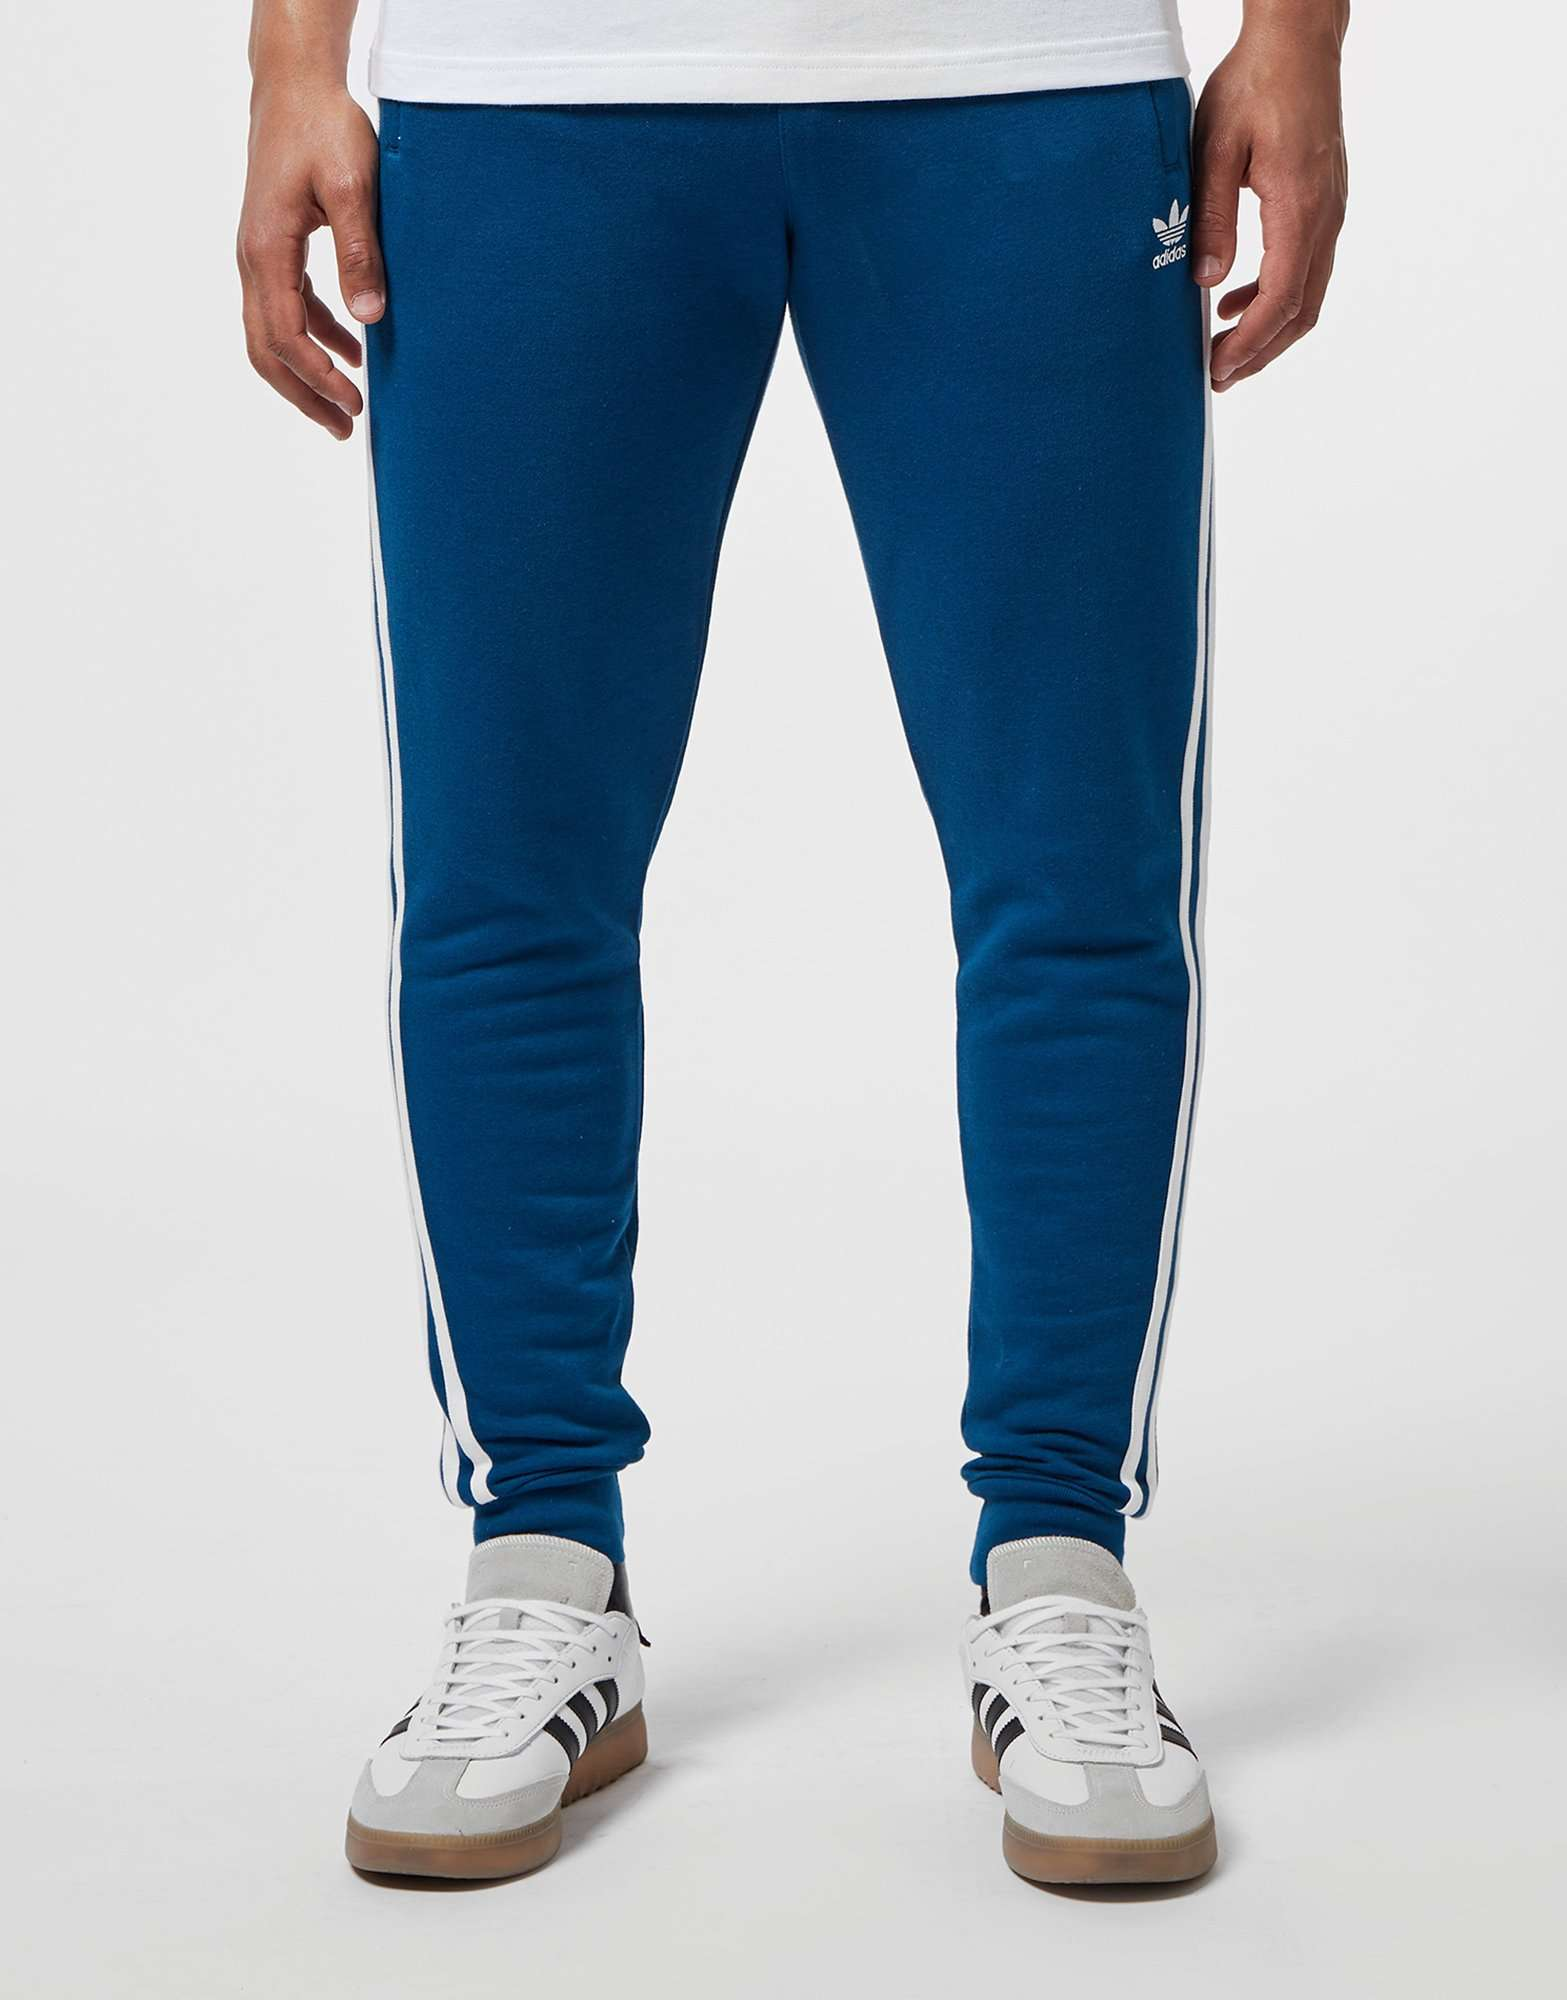 adidas Originals 3-Stripe Cuffed Fleece Pants